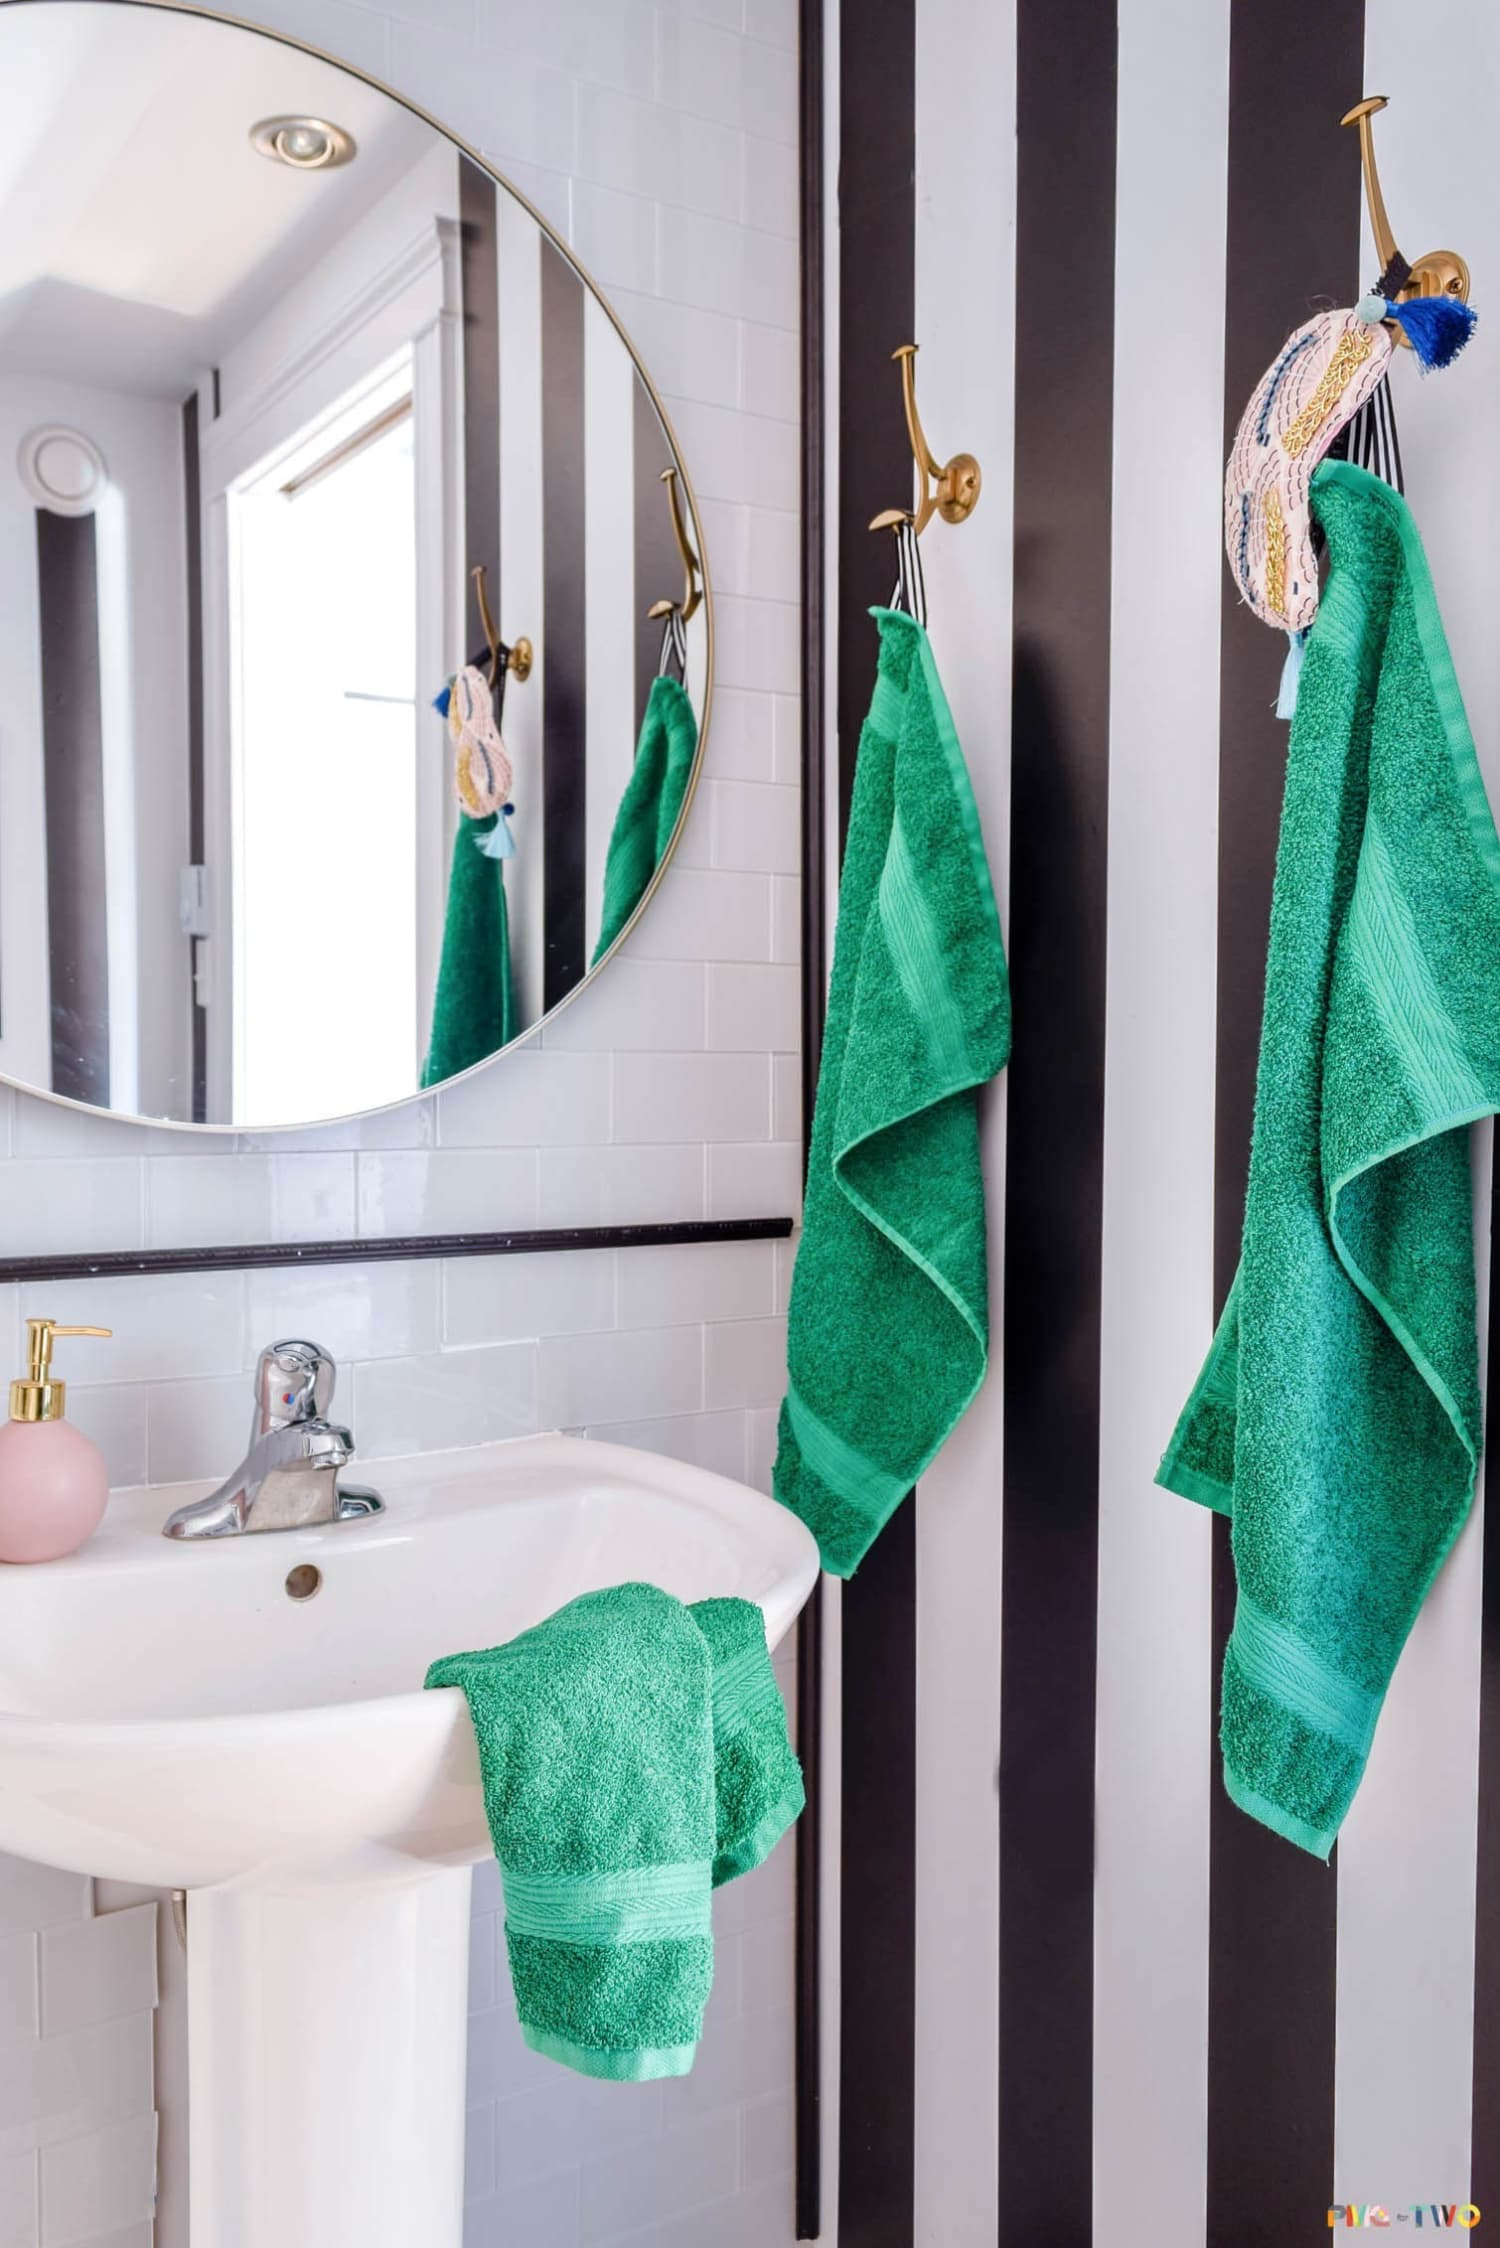 7 Easy Bathroom Upgrades You Can Afford Even on a Piddly Salary